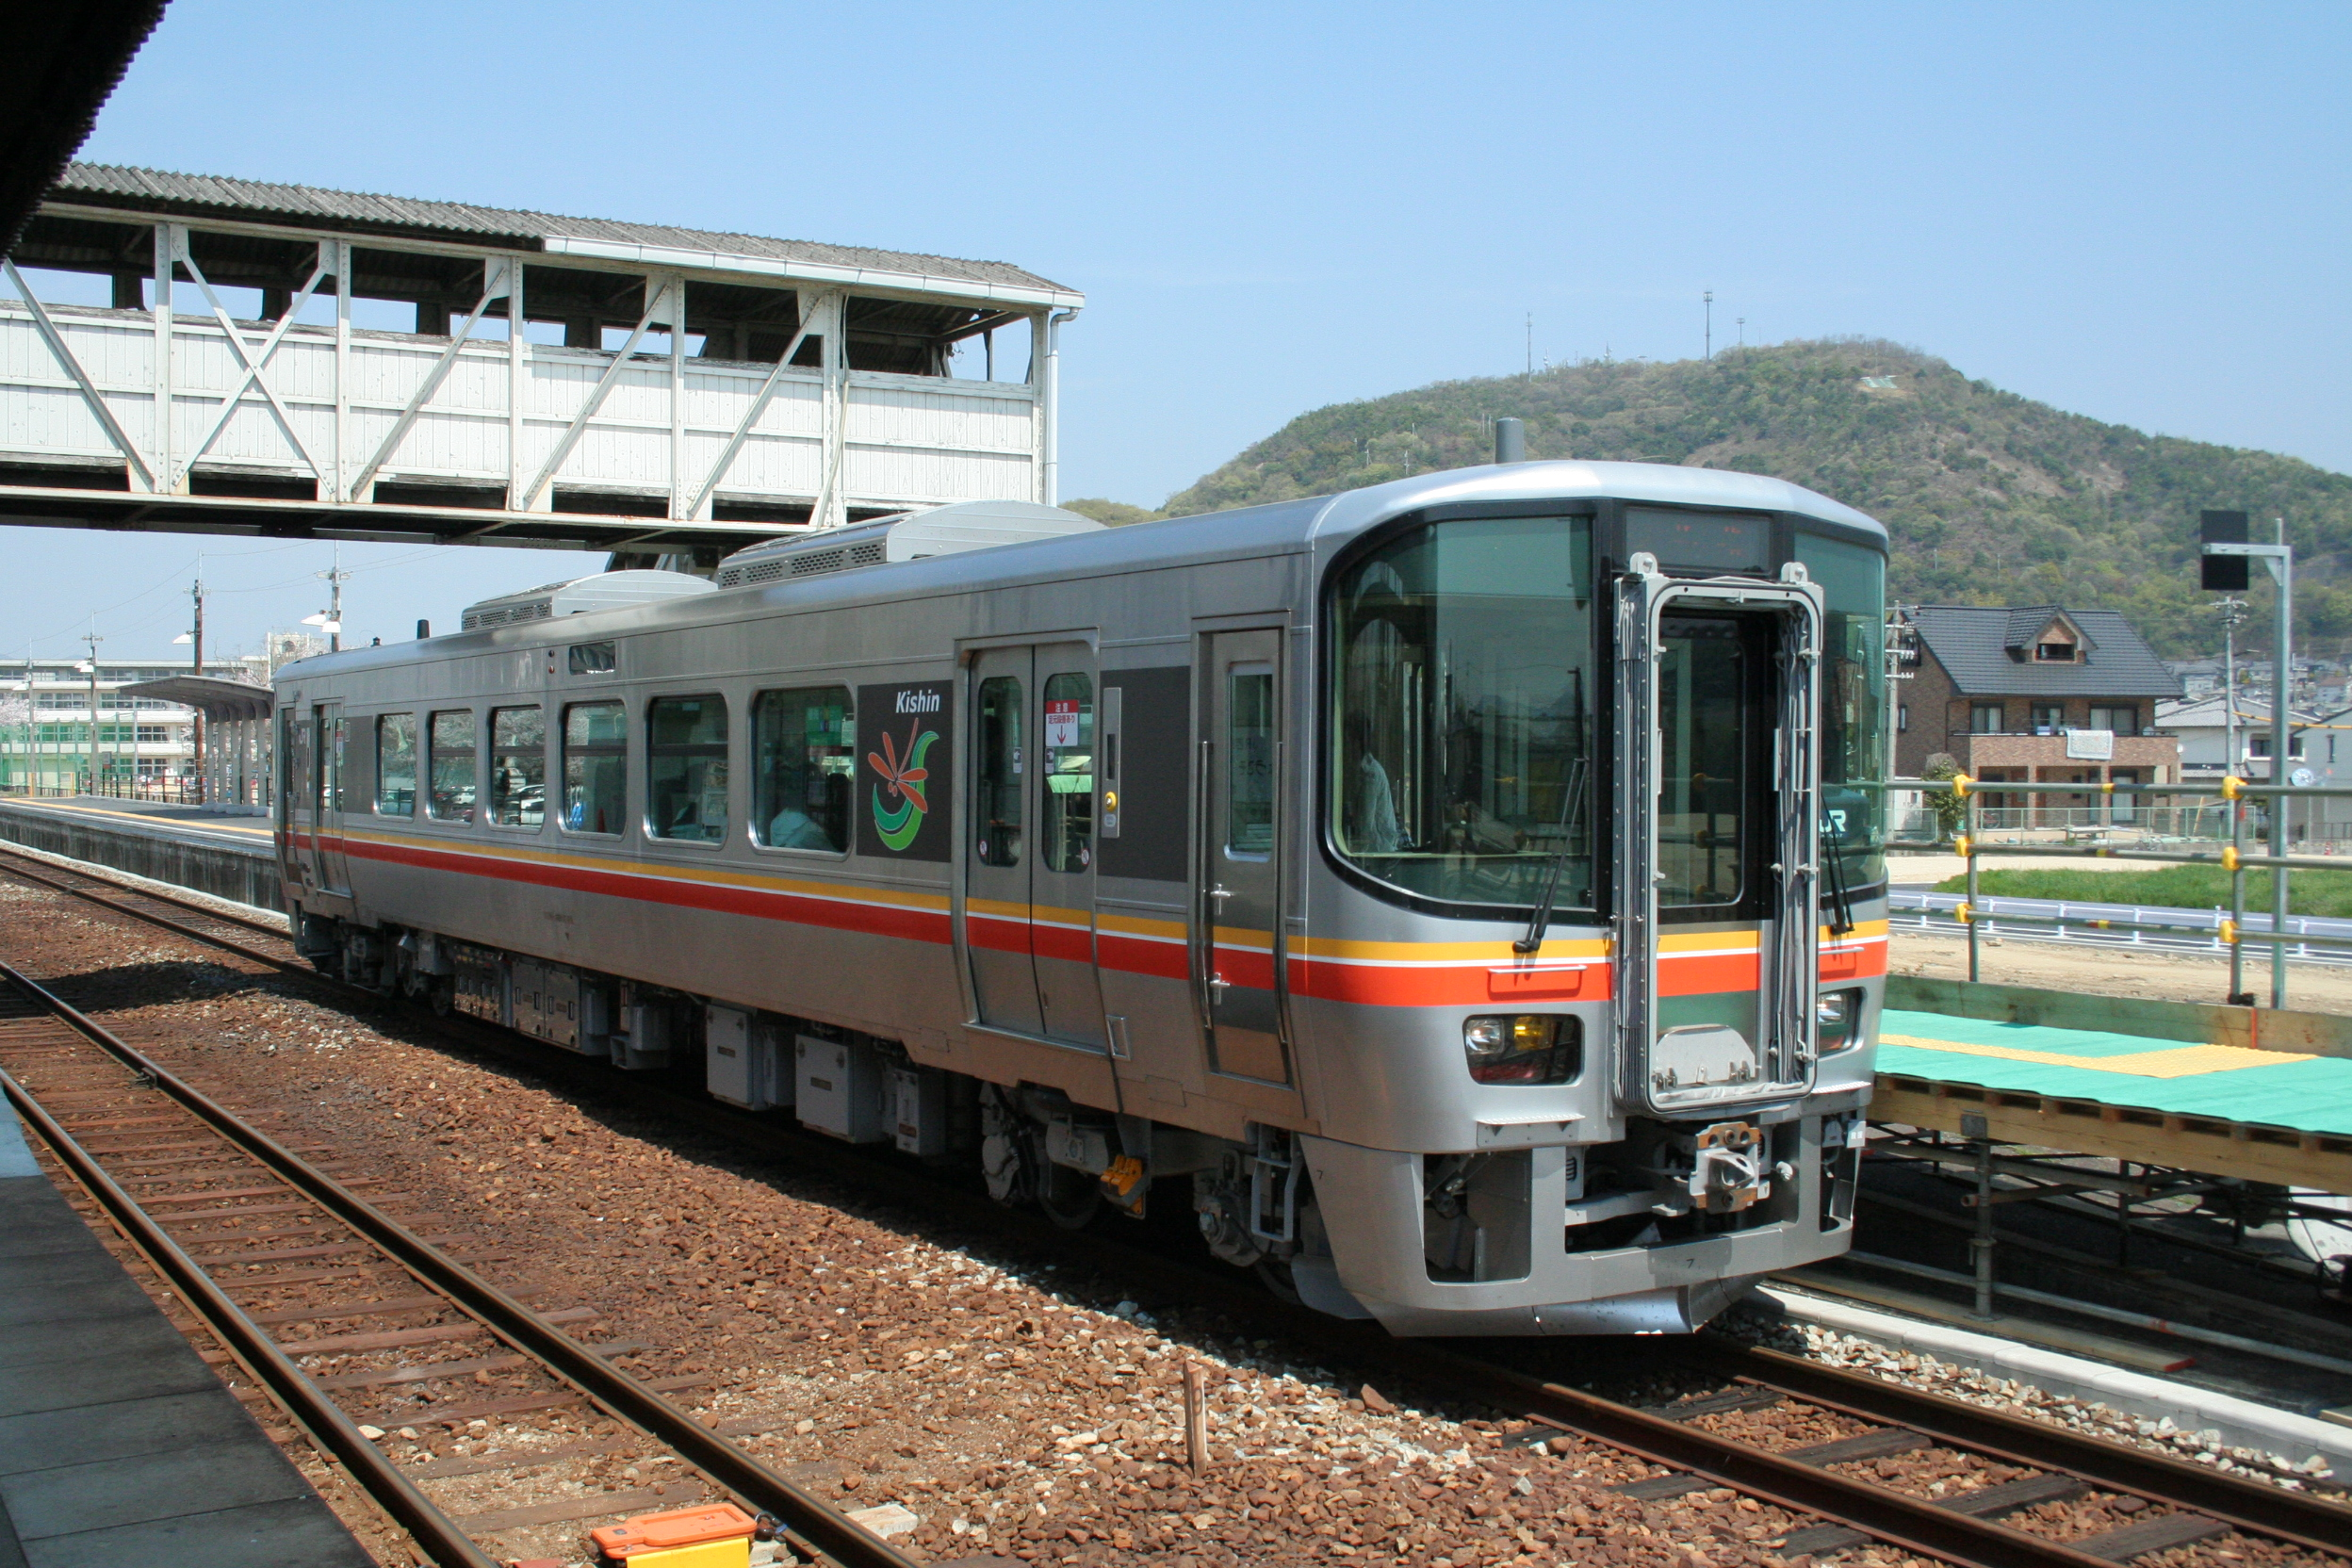 https://upload.wikimedia.org/wikipedia/commons/1/12/Hontatsuno_Station_at_April_09_by_CR_14.jpg